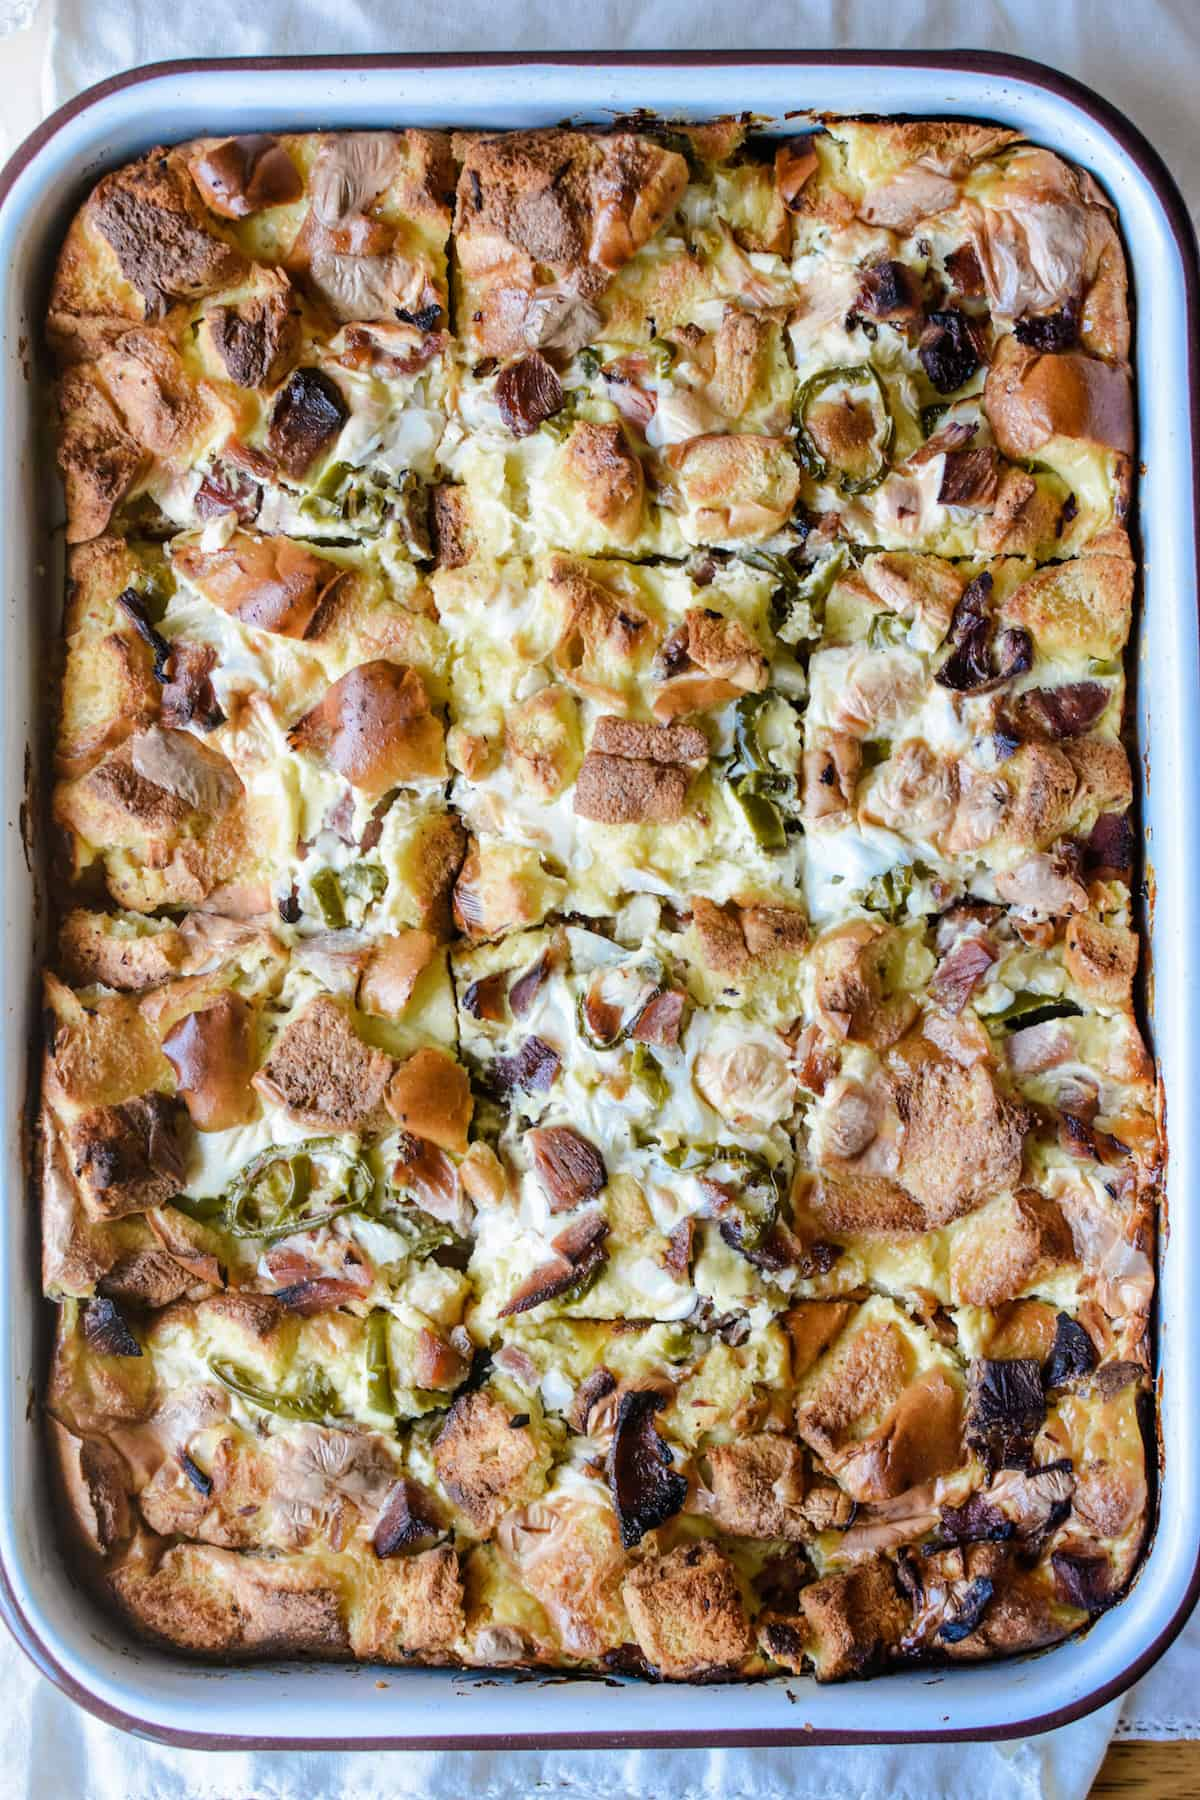 How to make a Mexican-style ham and cheese breakfast casserole that has all the flavors of a Torta de Jamón or ham and cheese sandwich. Not only does this great for feeding a crowd for a big holiday brunch, but it also uses up leftover ham you may have from previous get-togethers. Simple and EASY! #ad #breakfastcasserole #ham #eggcasserole